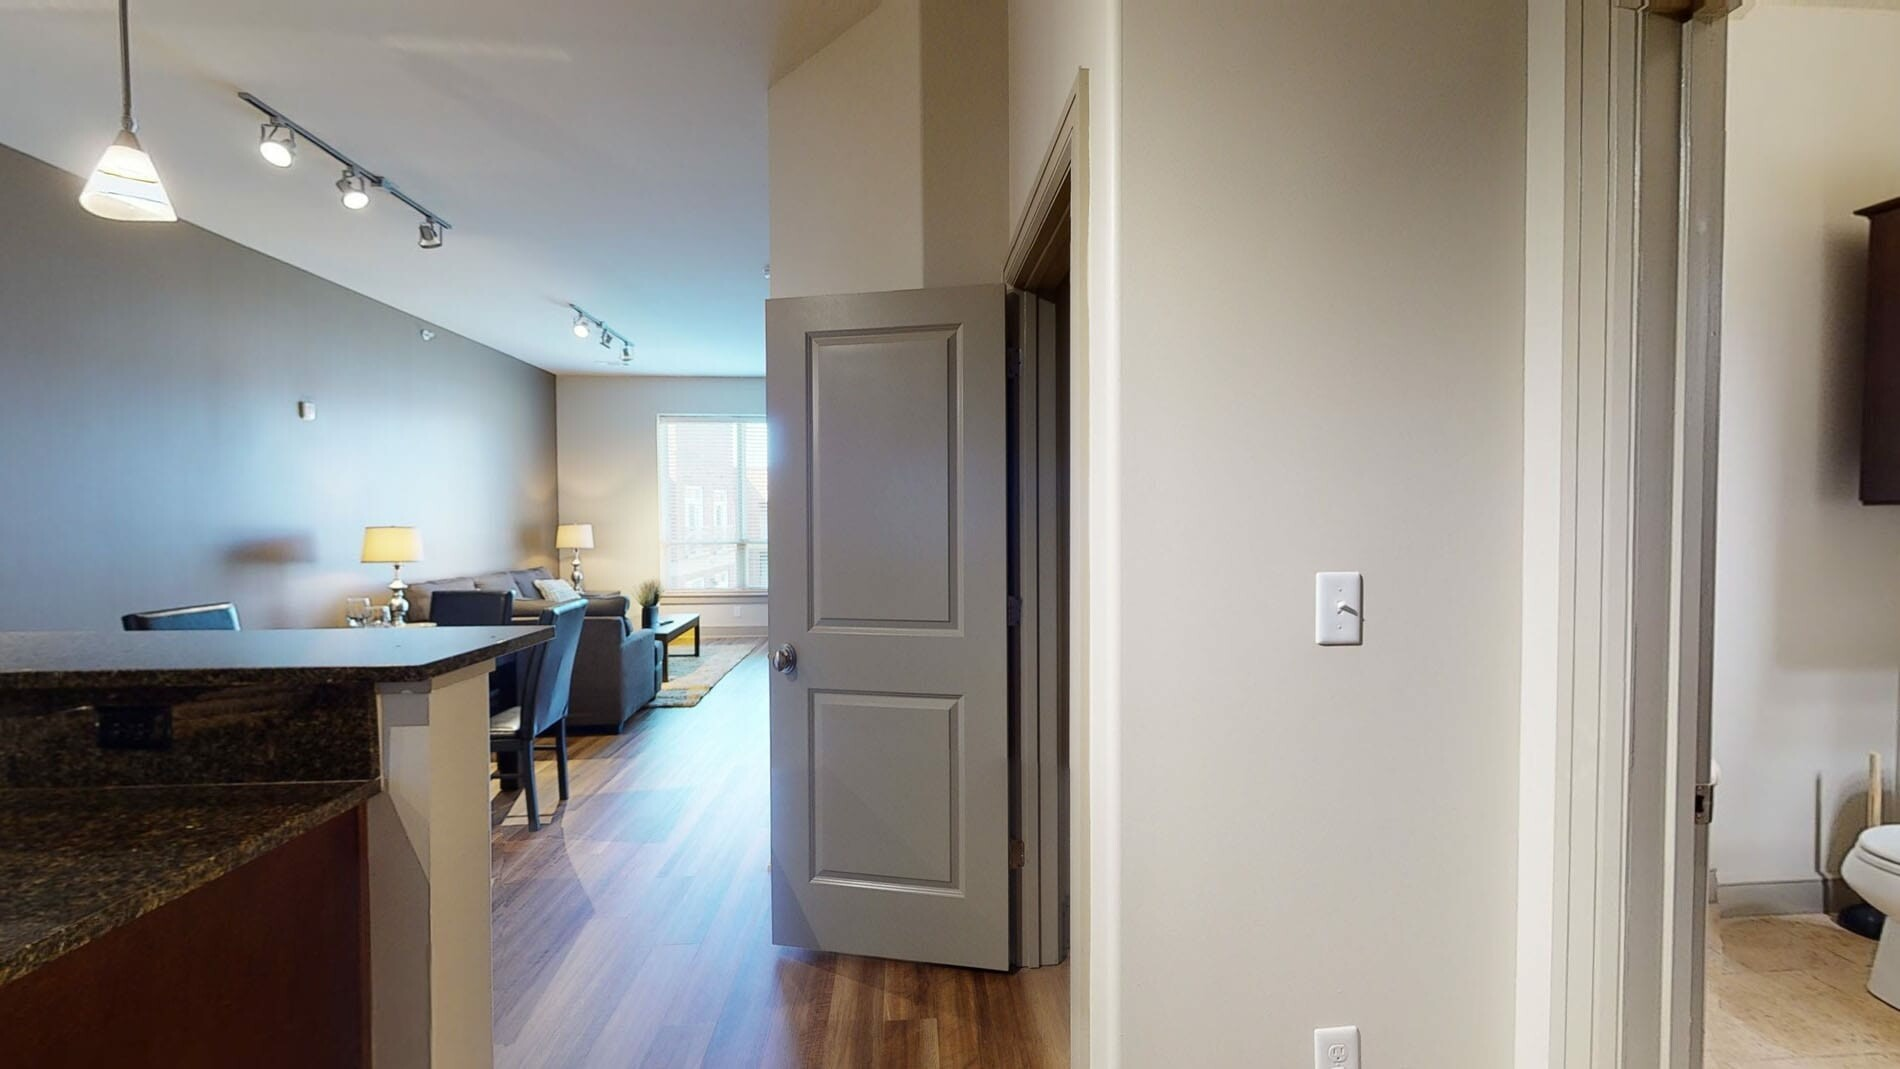 1 Bed, 1 Bath apartment in Needham for $2,736